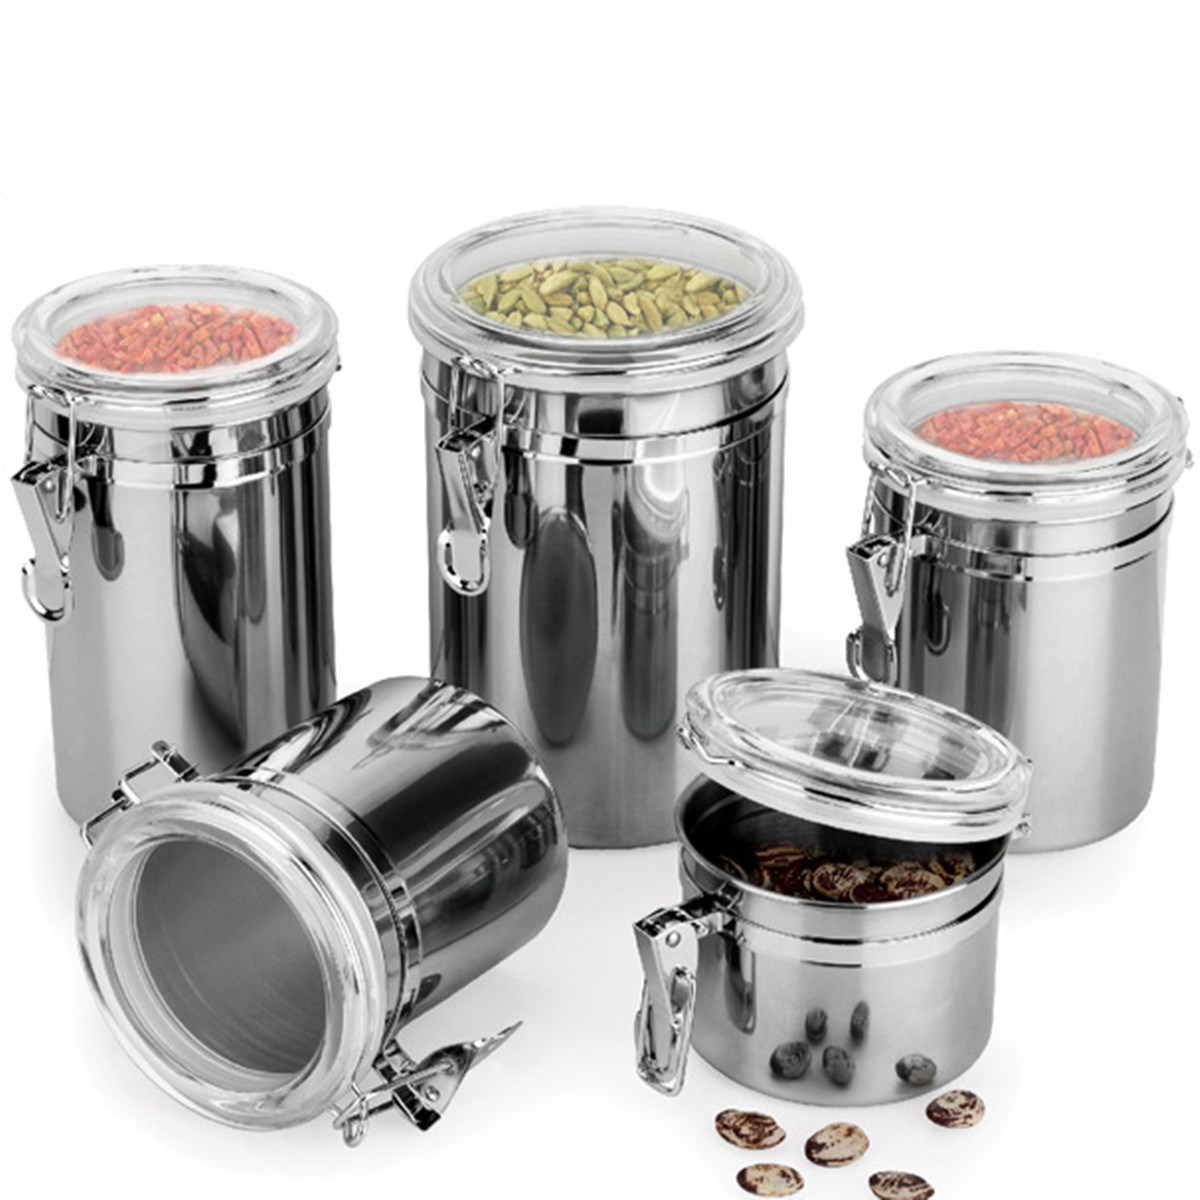 Kitchen Storage Bottles: Online Shopping Food Canisters